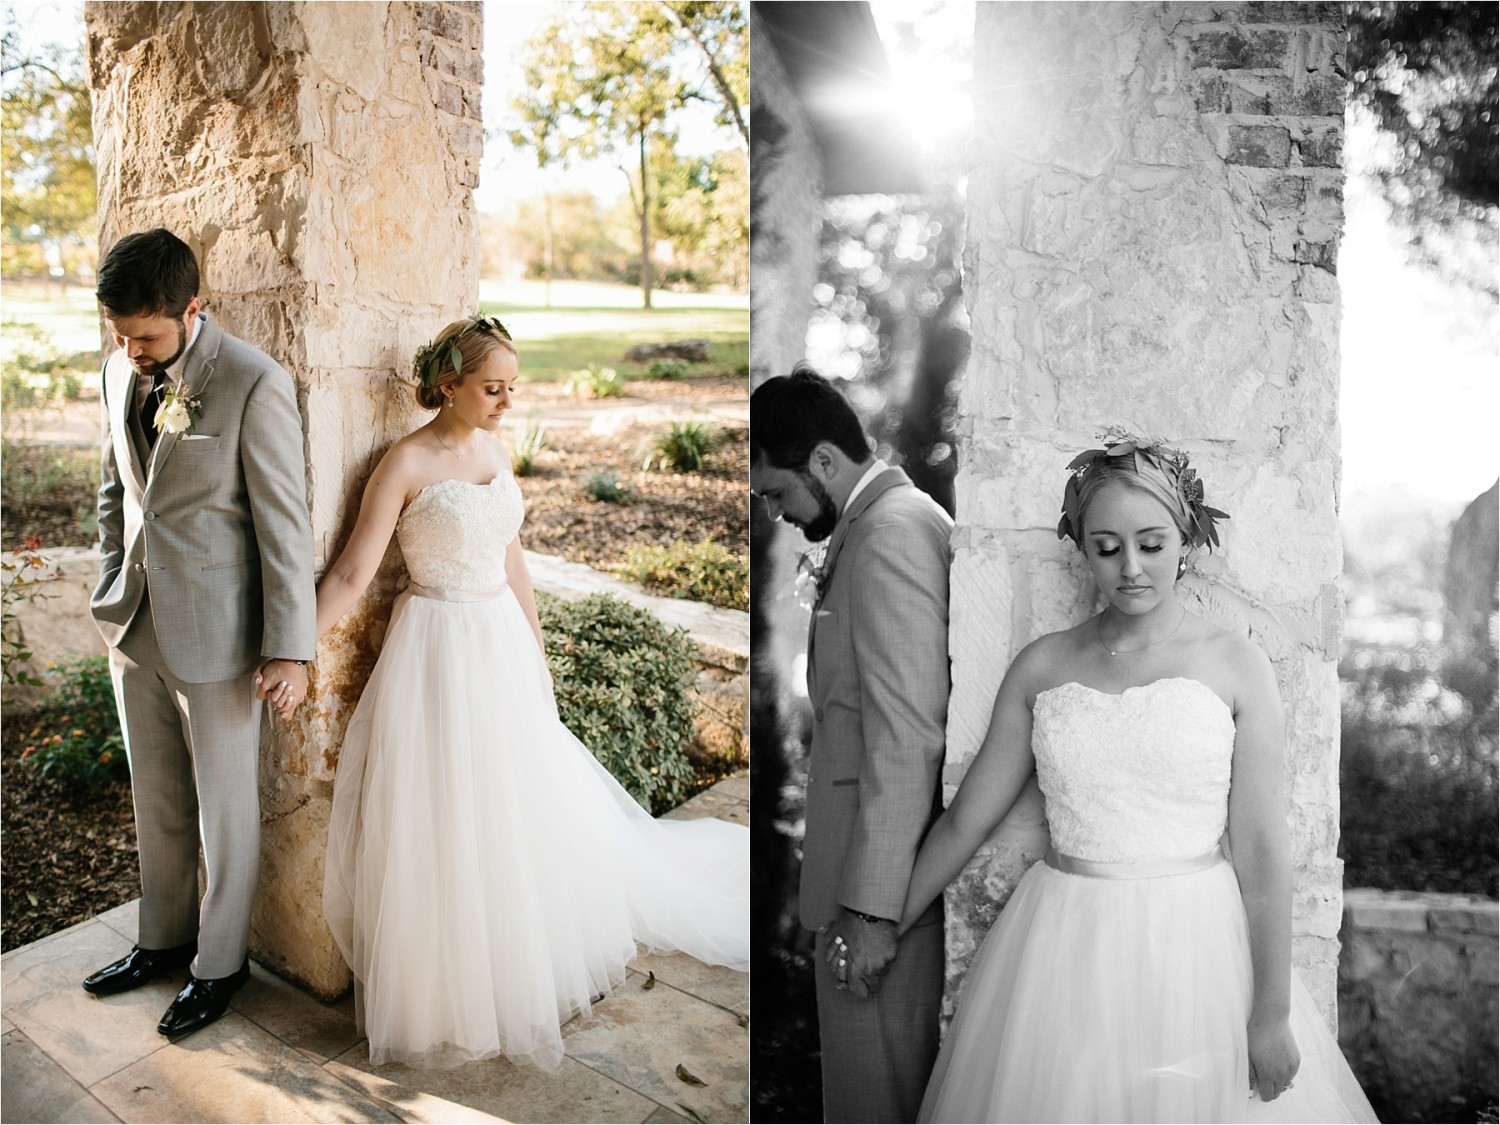 brad-lara-__-a-grey-and-blush-pink-intimate-wedding-at-hidden-waters-event-center-in-waxahachie-tx-by-north-texas-wedding-photographer-rachel-meagan-photography-_-036